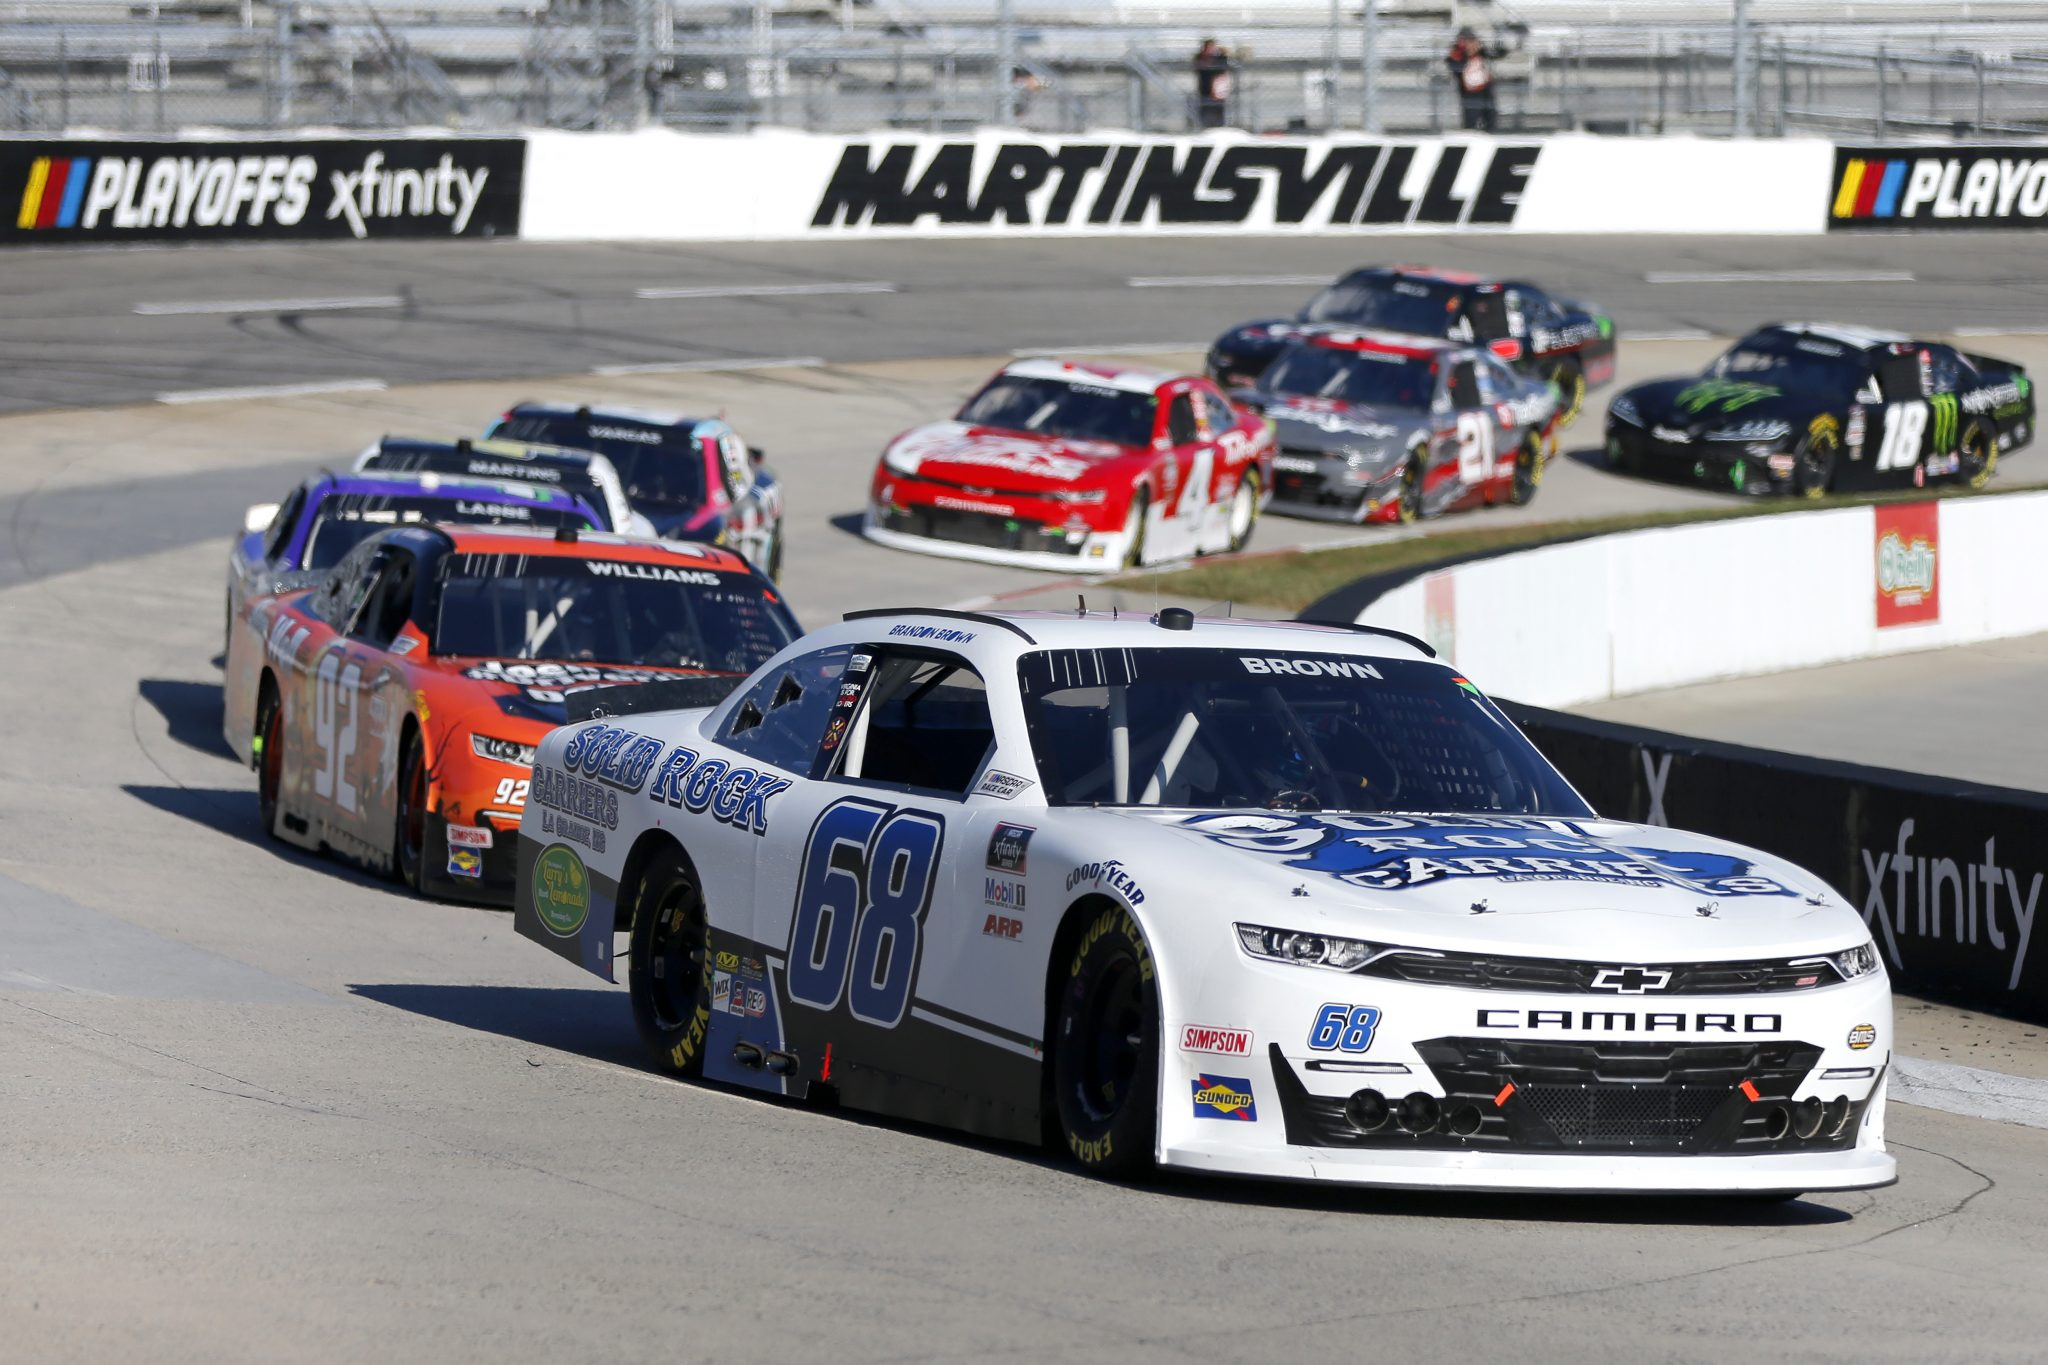 MARTINSVILLE, VIRGINIA - OCTOBER 31: Brandon Brown, driver of the #68 Solid Rock Carriers Chevrolet, leads the field during the NASCAR Xfinity Series Draft Top 250 at Martinsville Speedway on October 31, 2020 in Martinsville, Virginia. (Photo by Brian Lawdermilk/Getty Images) | Getty Images